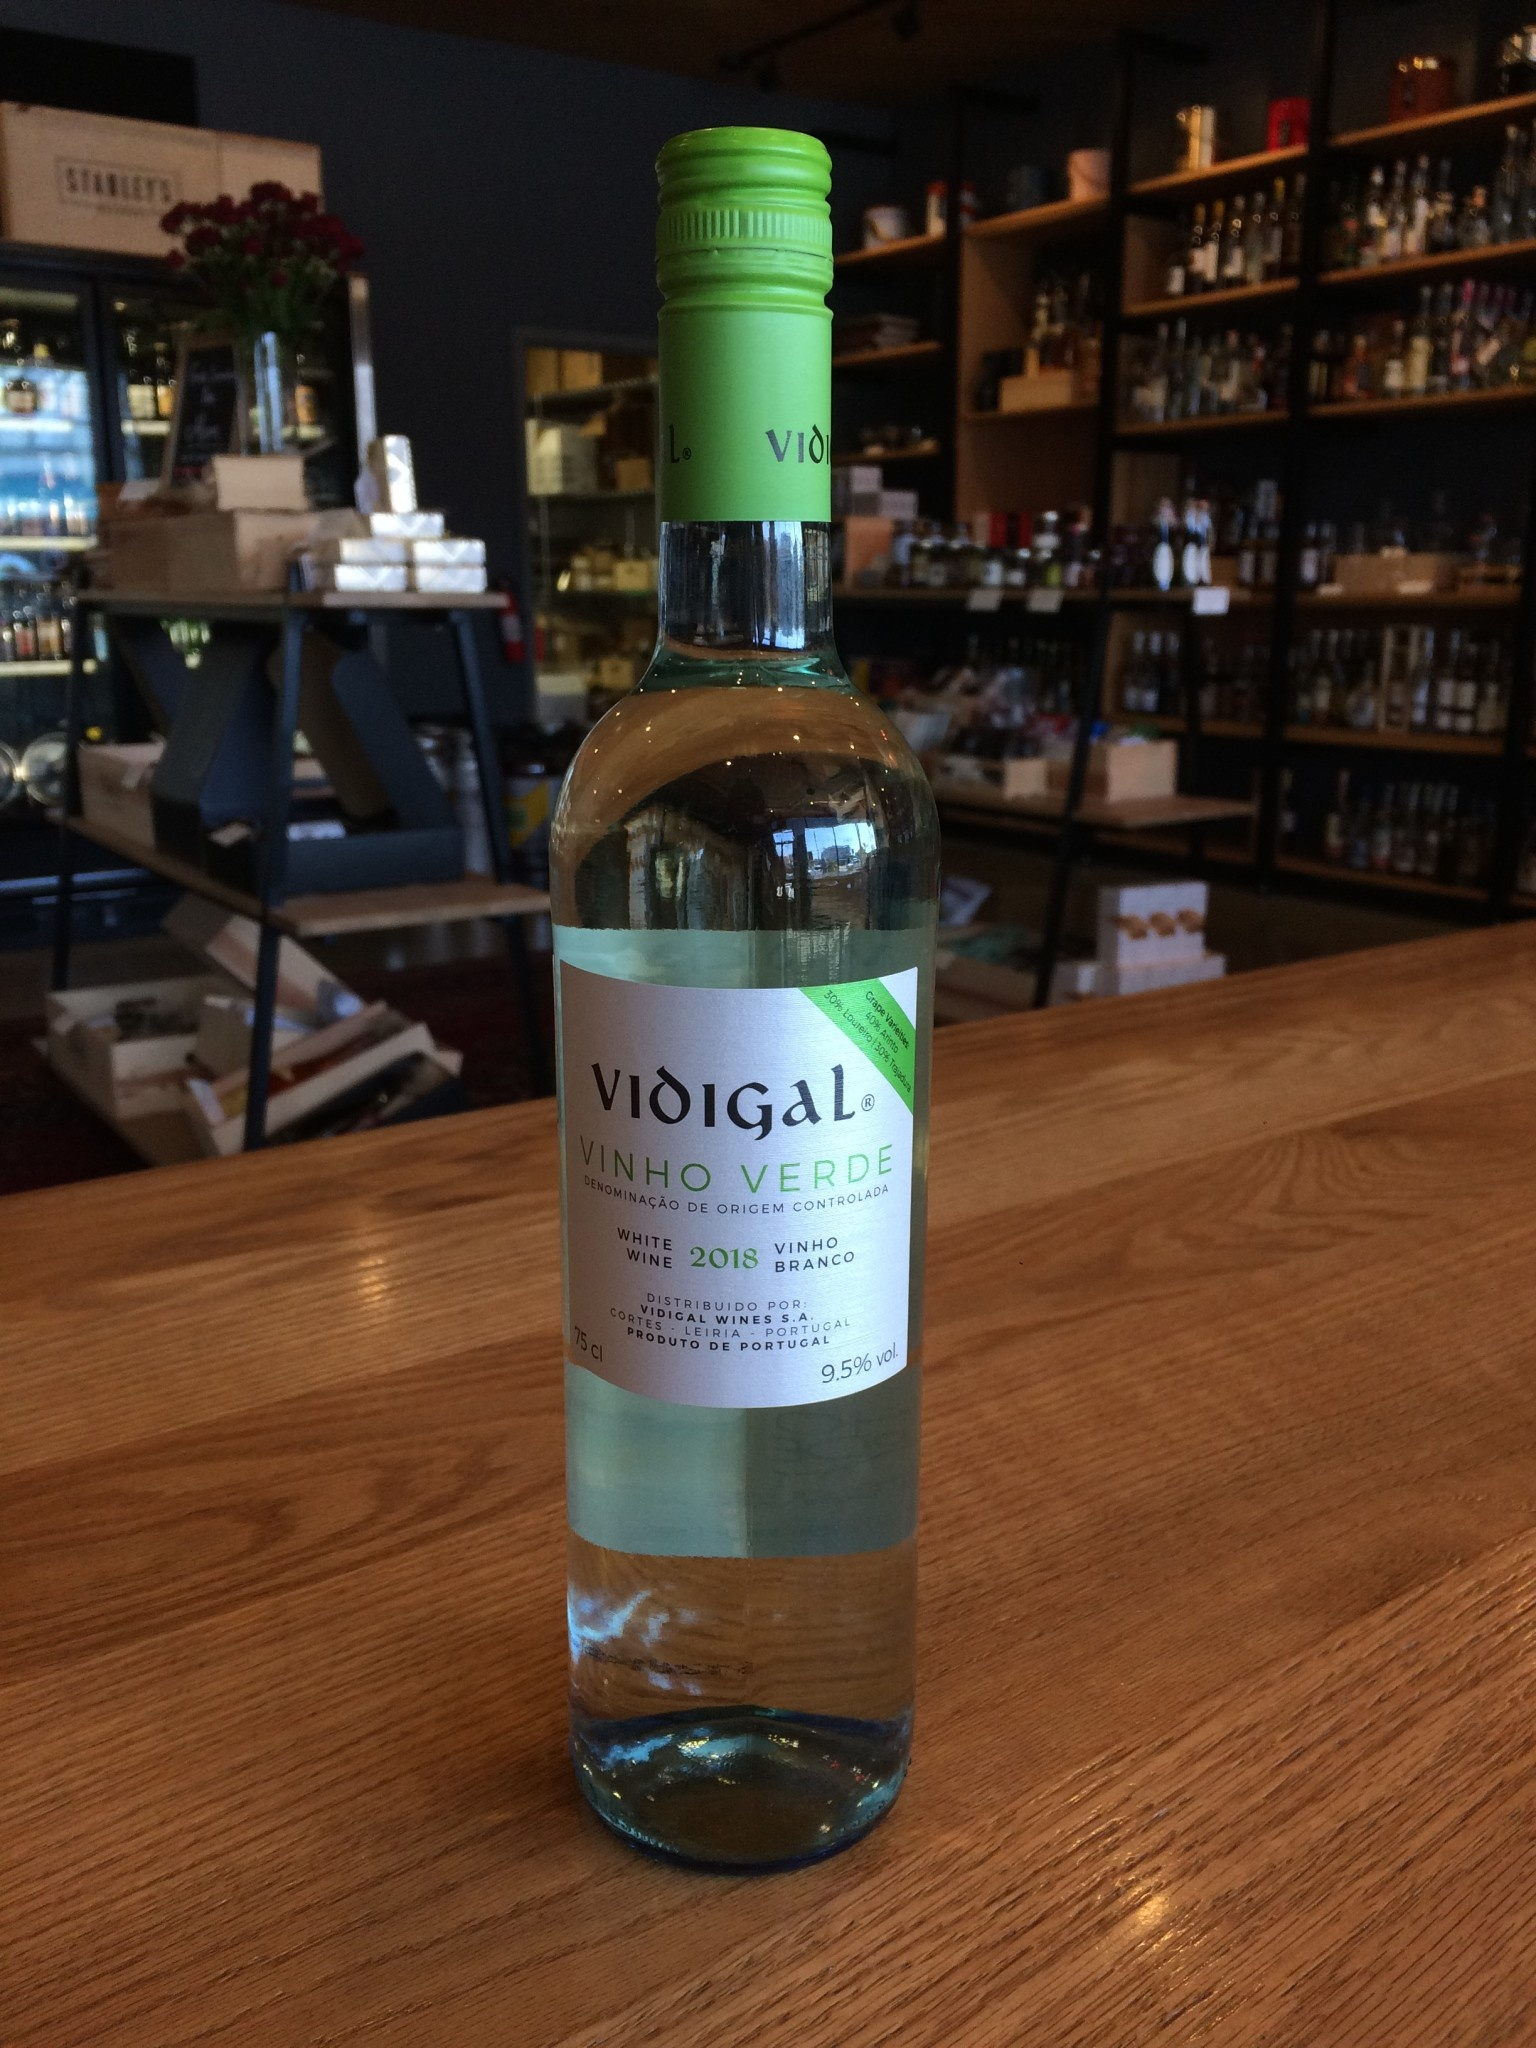 Caves Vidigal 2018 Caves Vidigal Vinho Verde 750ml